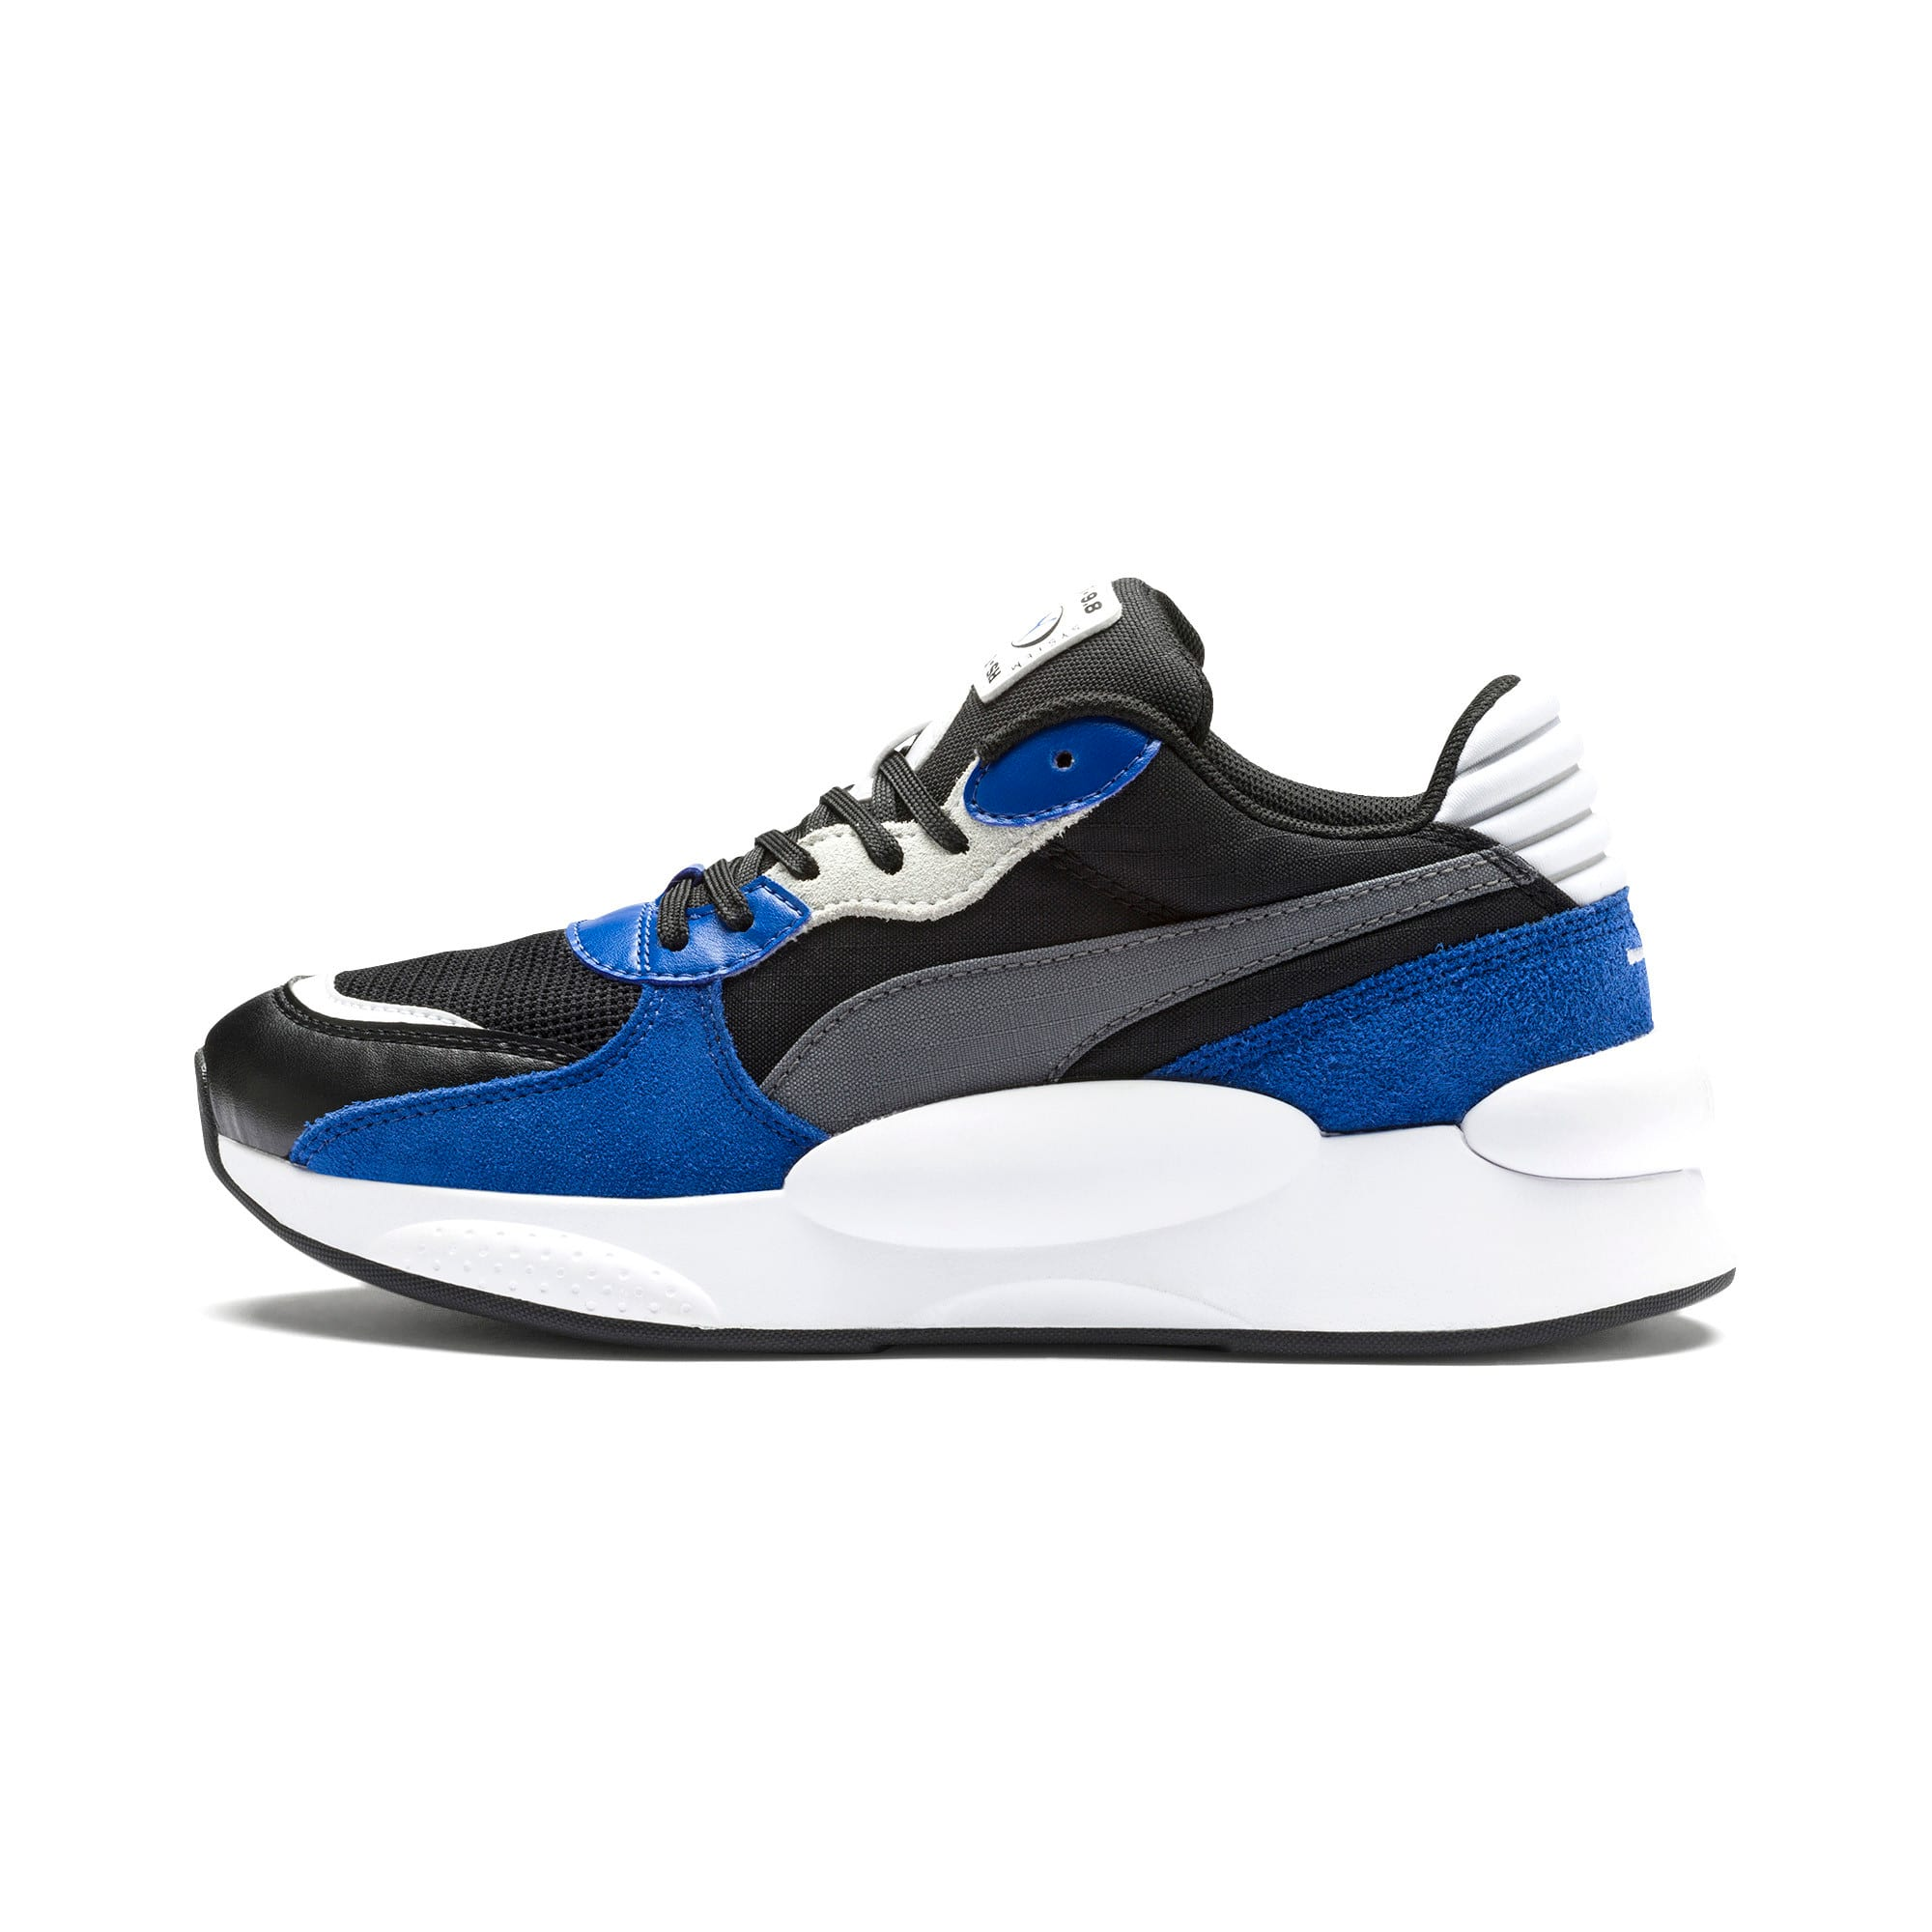 Thumbnail 1 of RS 9.8 Space Youth Sneaker, Puma Black-Galaxy Blue, medium